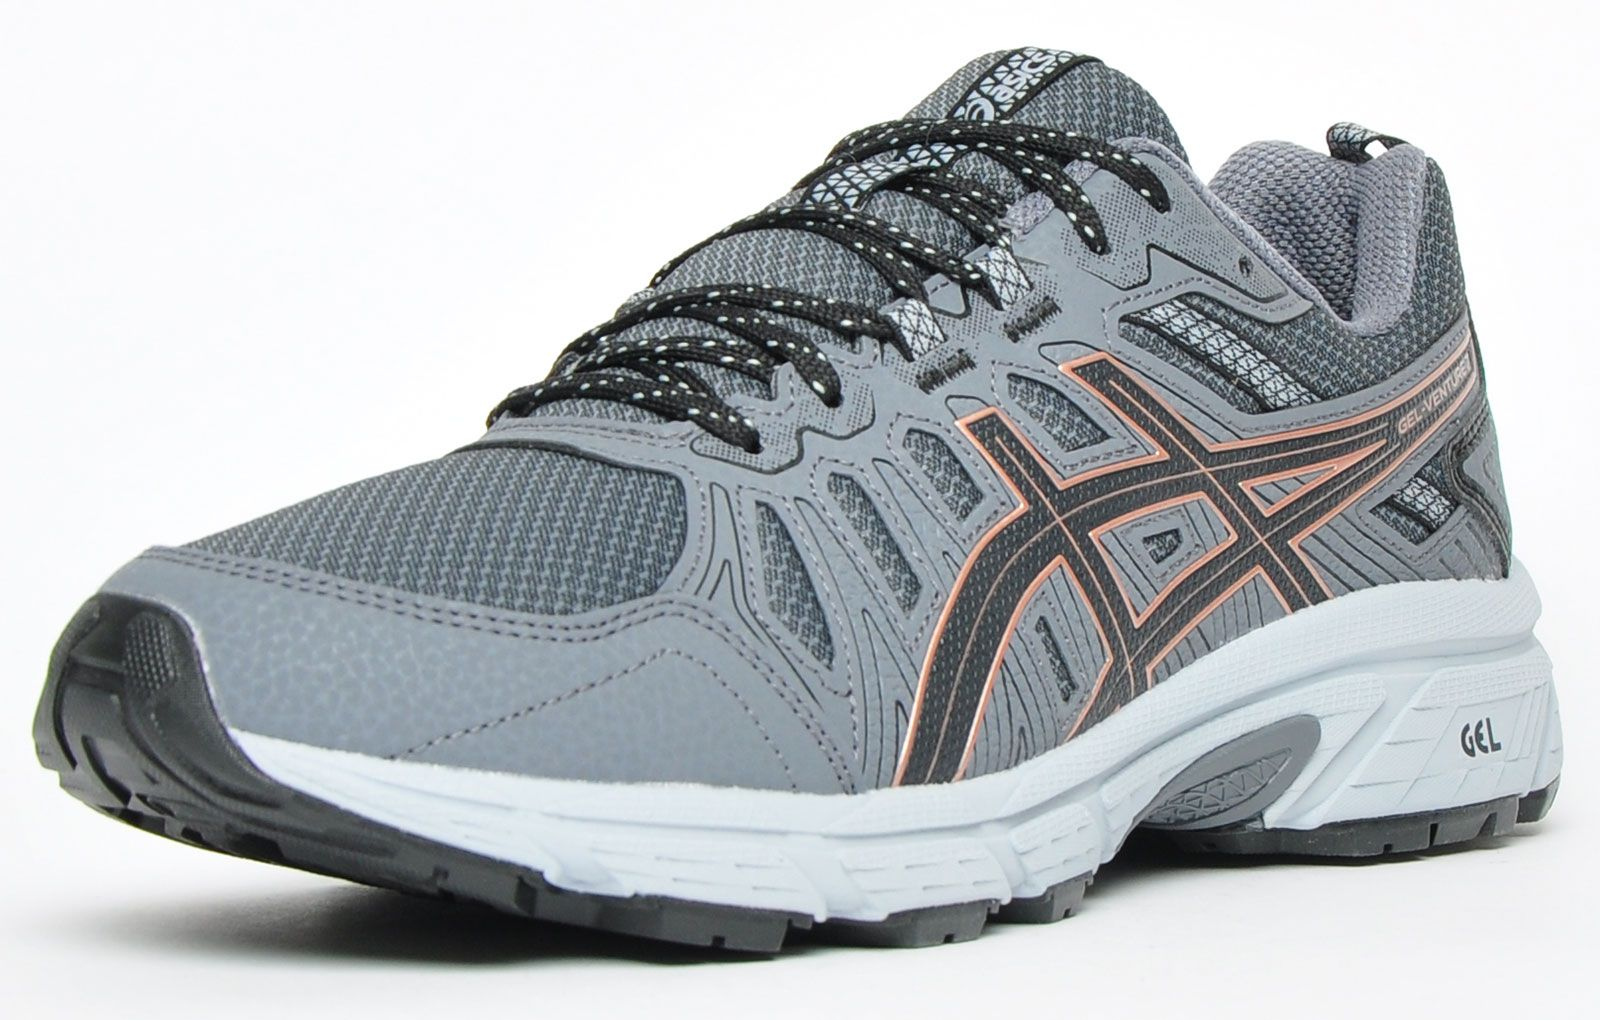 Asics Gel-Venture 7 All Terrain Mens